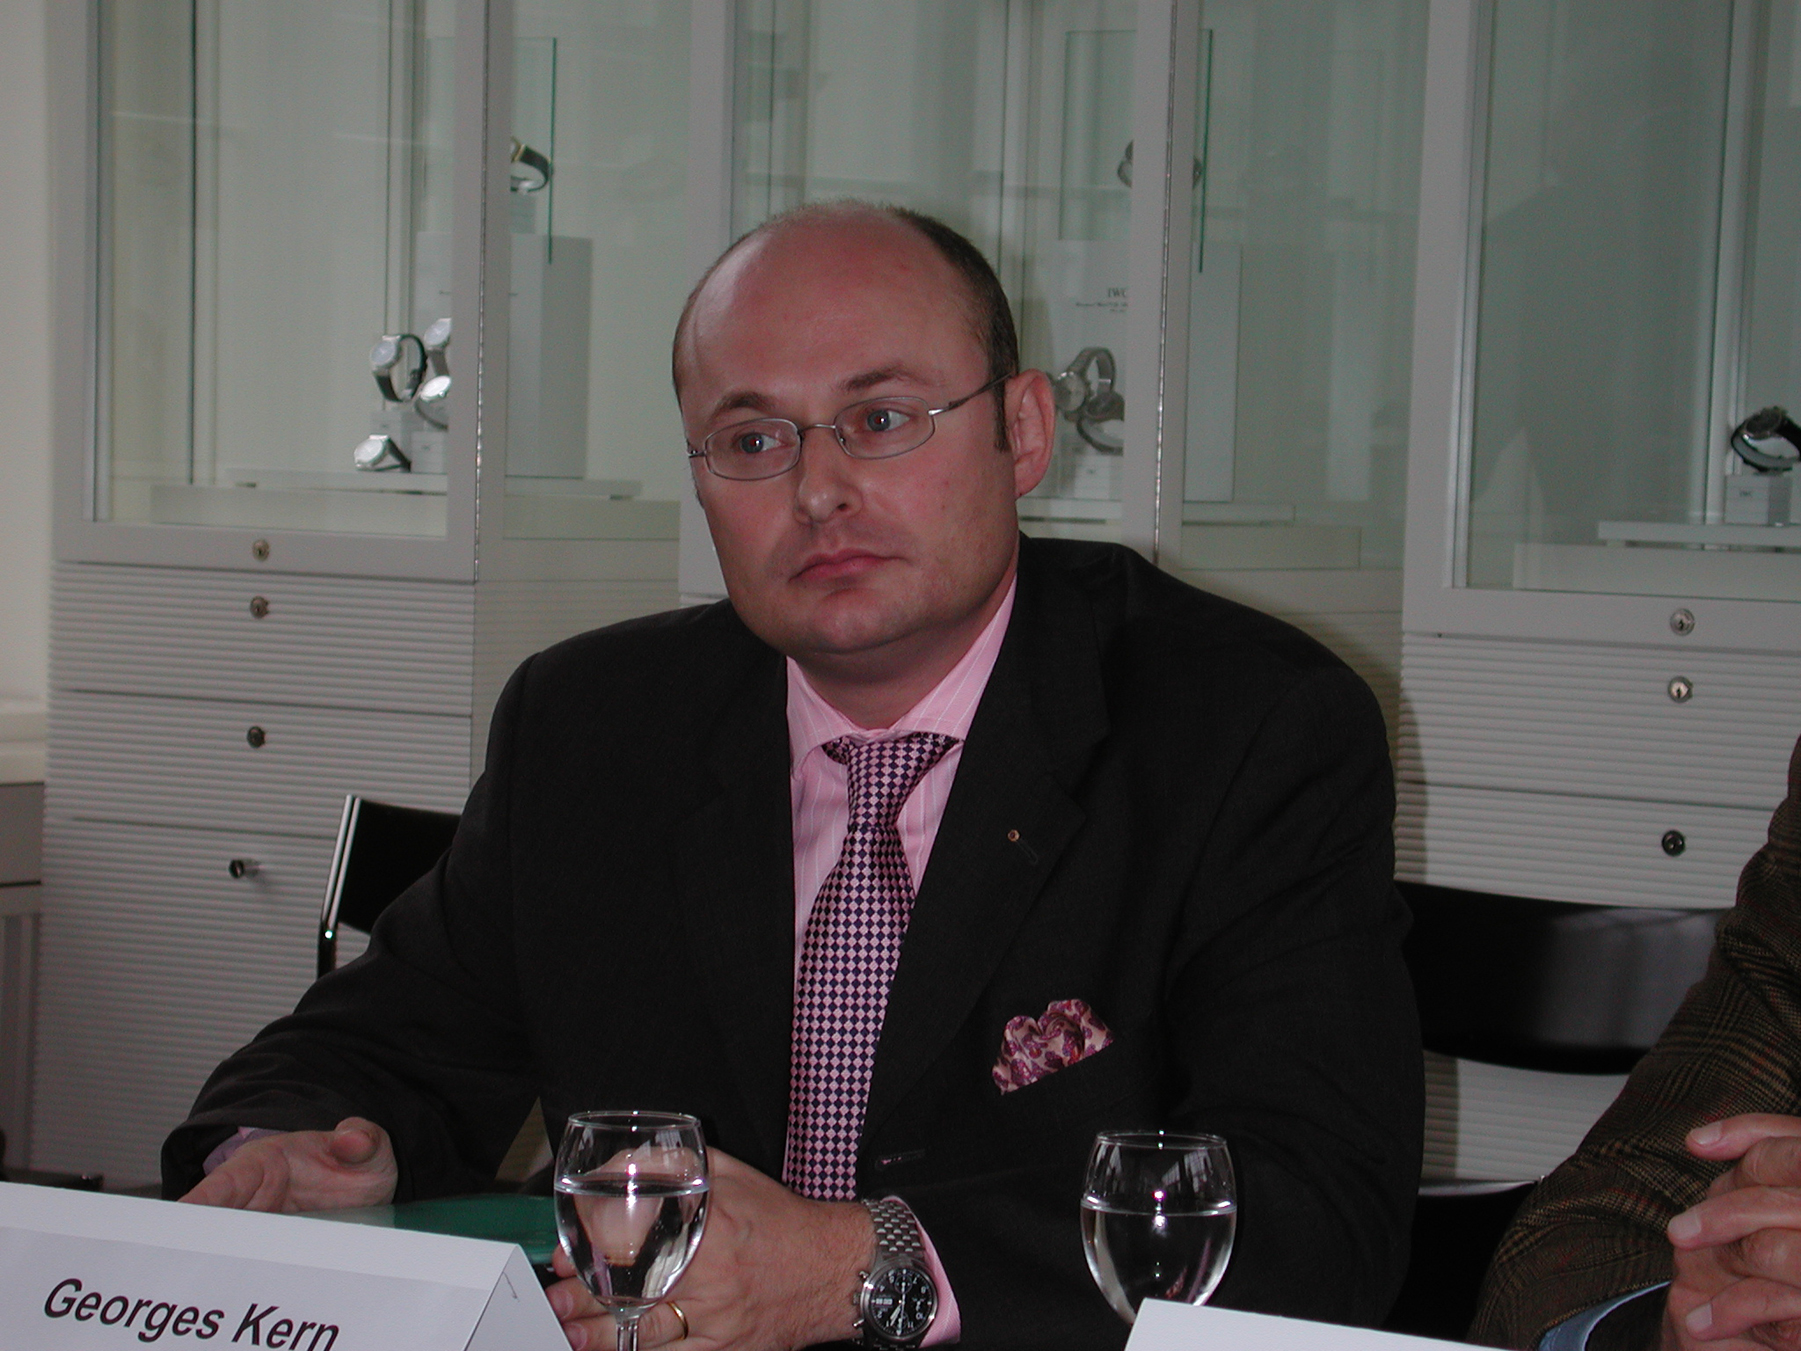 Georges Kern, November 2001,  some days before he was announced to be the new CEO of IWC Schaffhausen